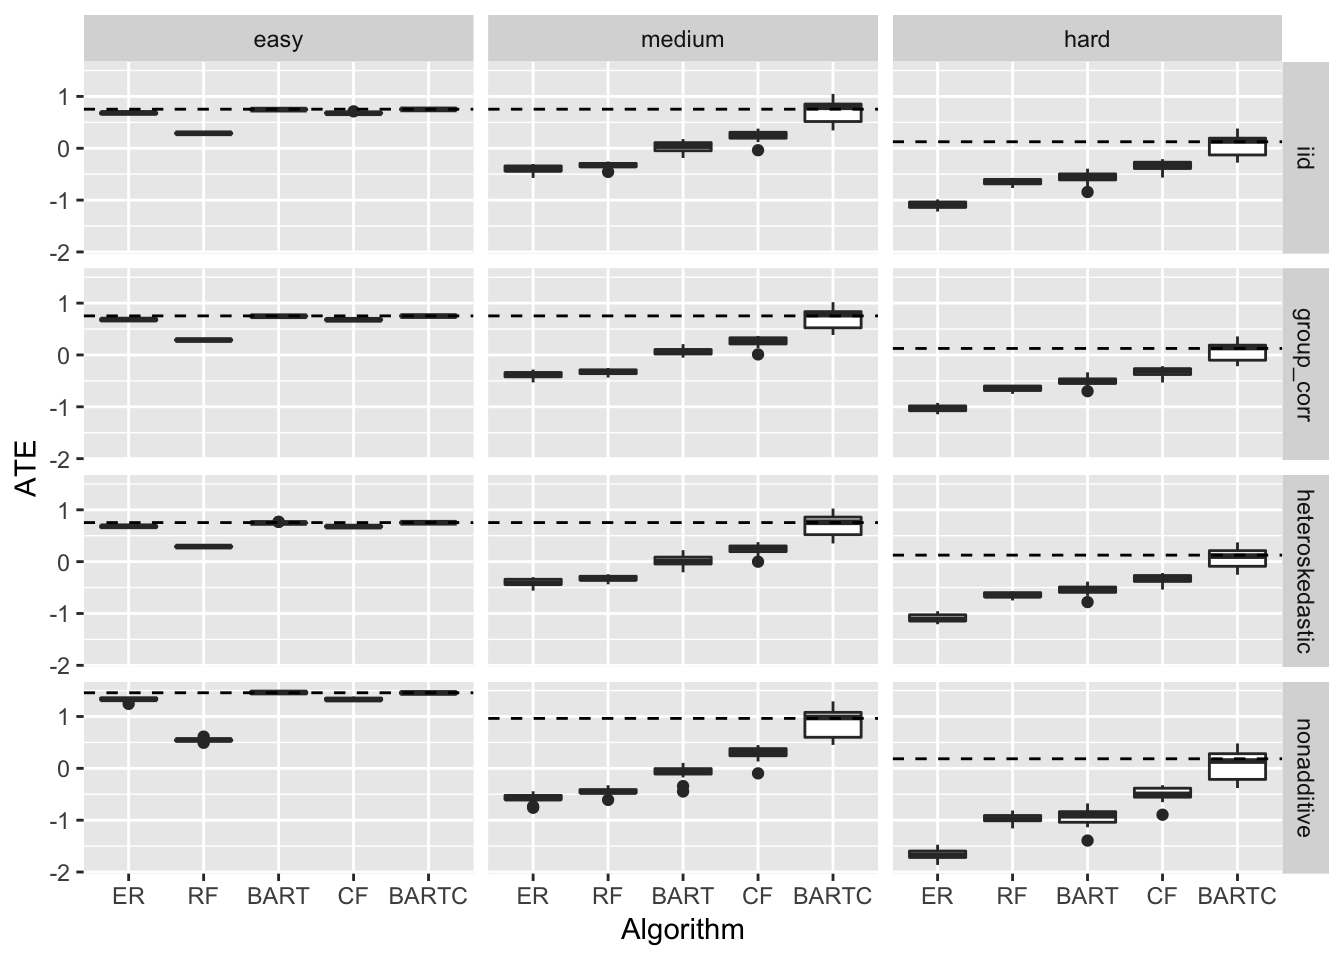 Causal inference bake off (Kaggle style!) | R-bloggers